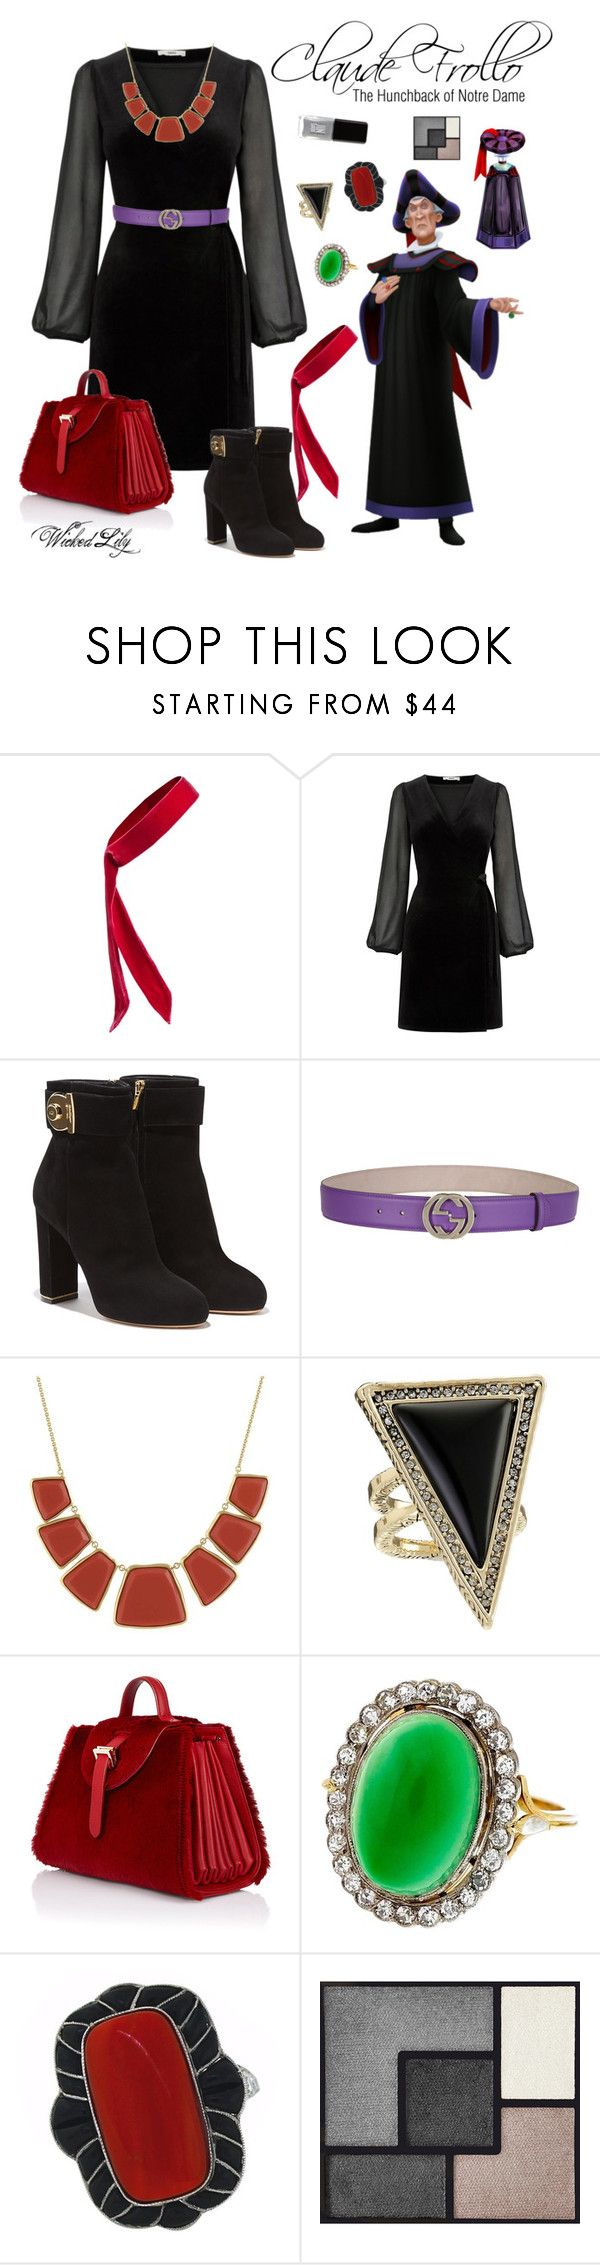 """""""Claude Frollo """"Disney Villains"""""""" by le-piano-argent ❤ liked on Polyvore featuring L. Erickson, Oasis, Salvatore Ferragamo, Gucci, Karen Kane, House of Harlow 1960, Disney, Meli Melo, Yves Saint Laurent and JINsoon"""